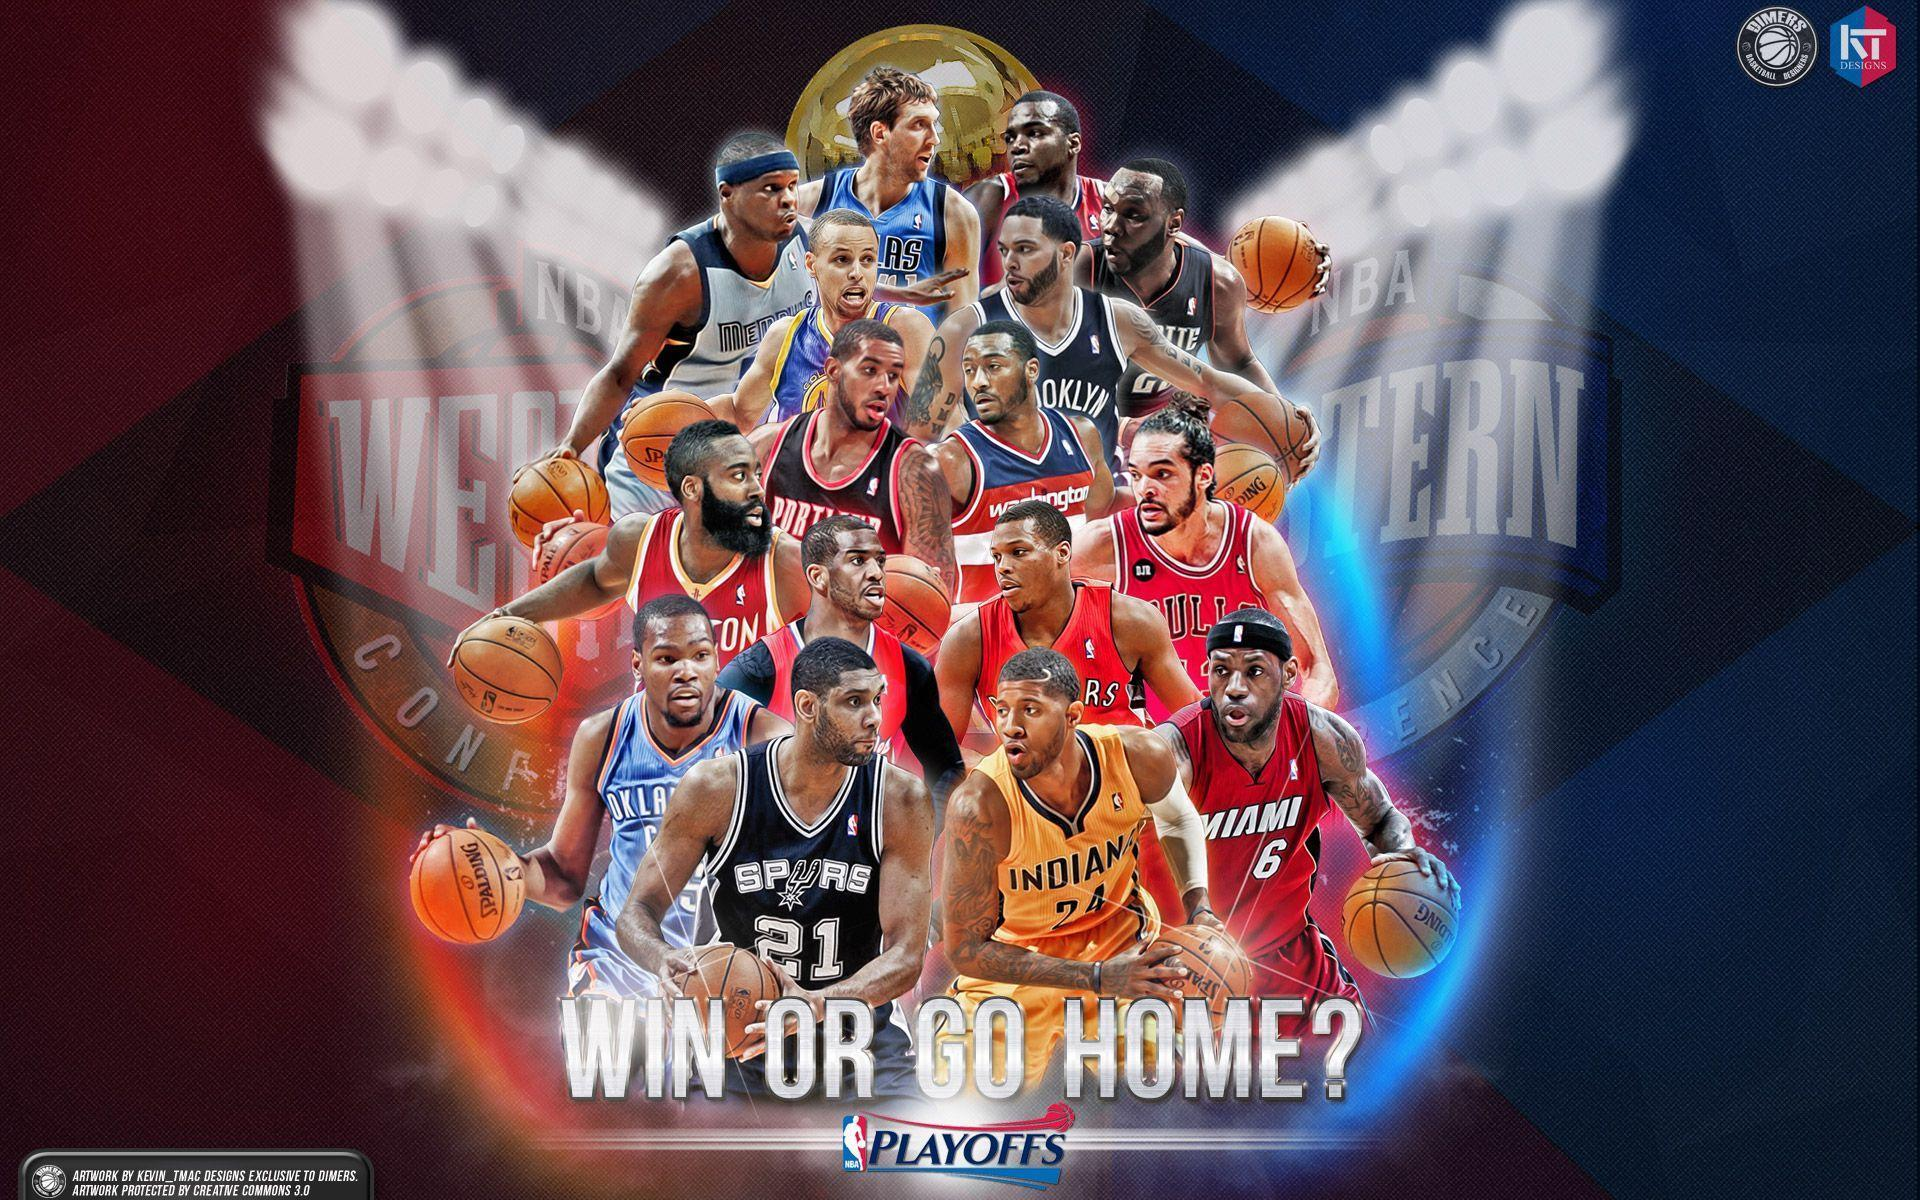 Uncategorized NBA Wallpapers | Basketball Wallpapers at ...